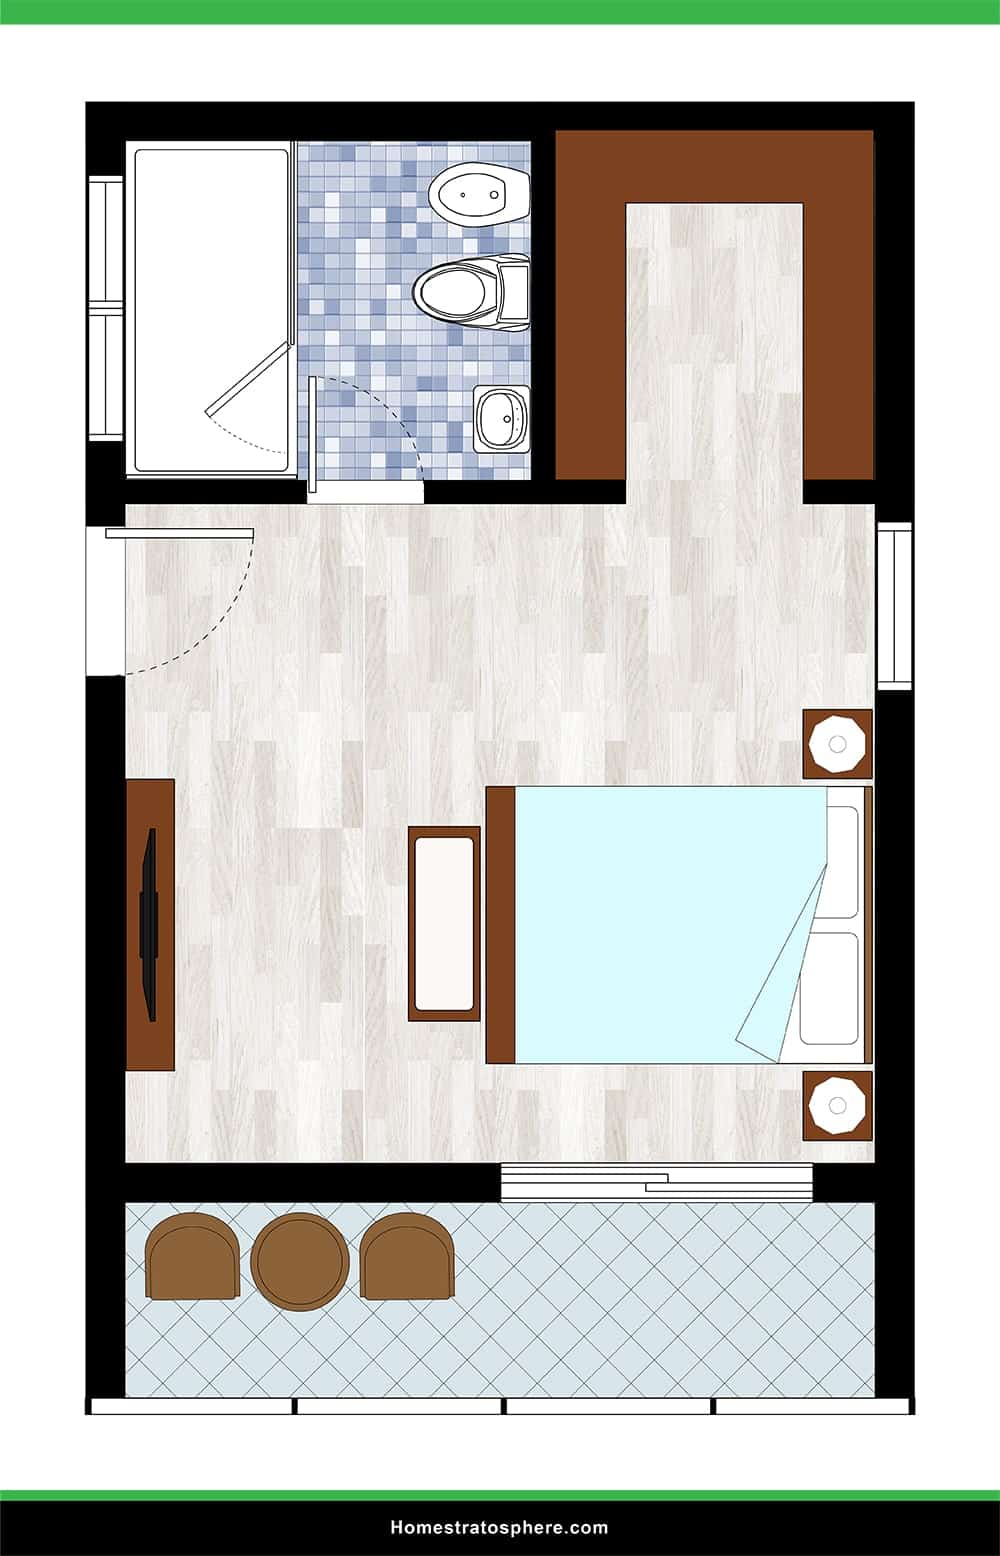 Large Bedroom with Balcony and Full Wall Shower